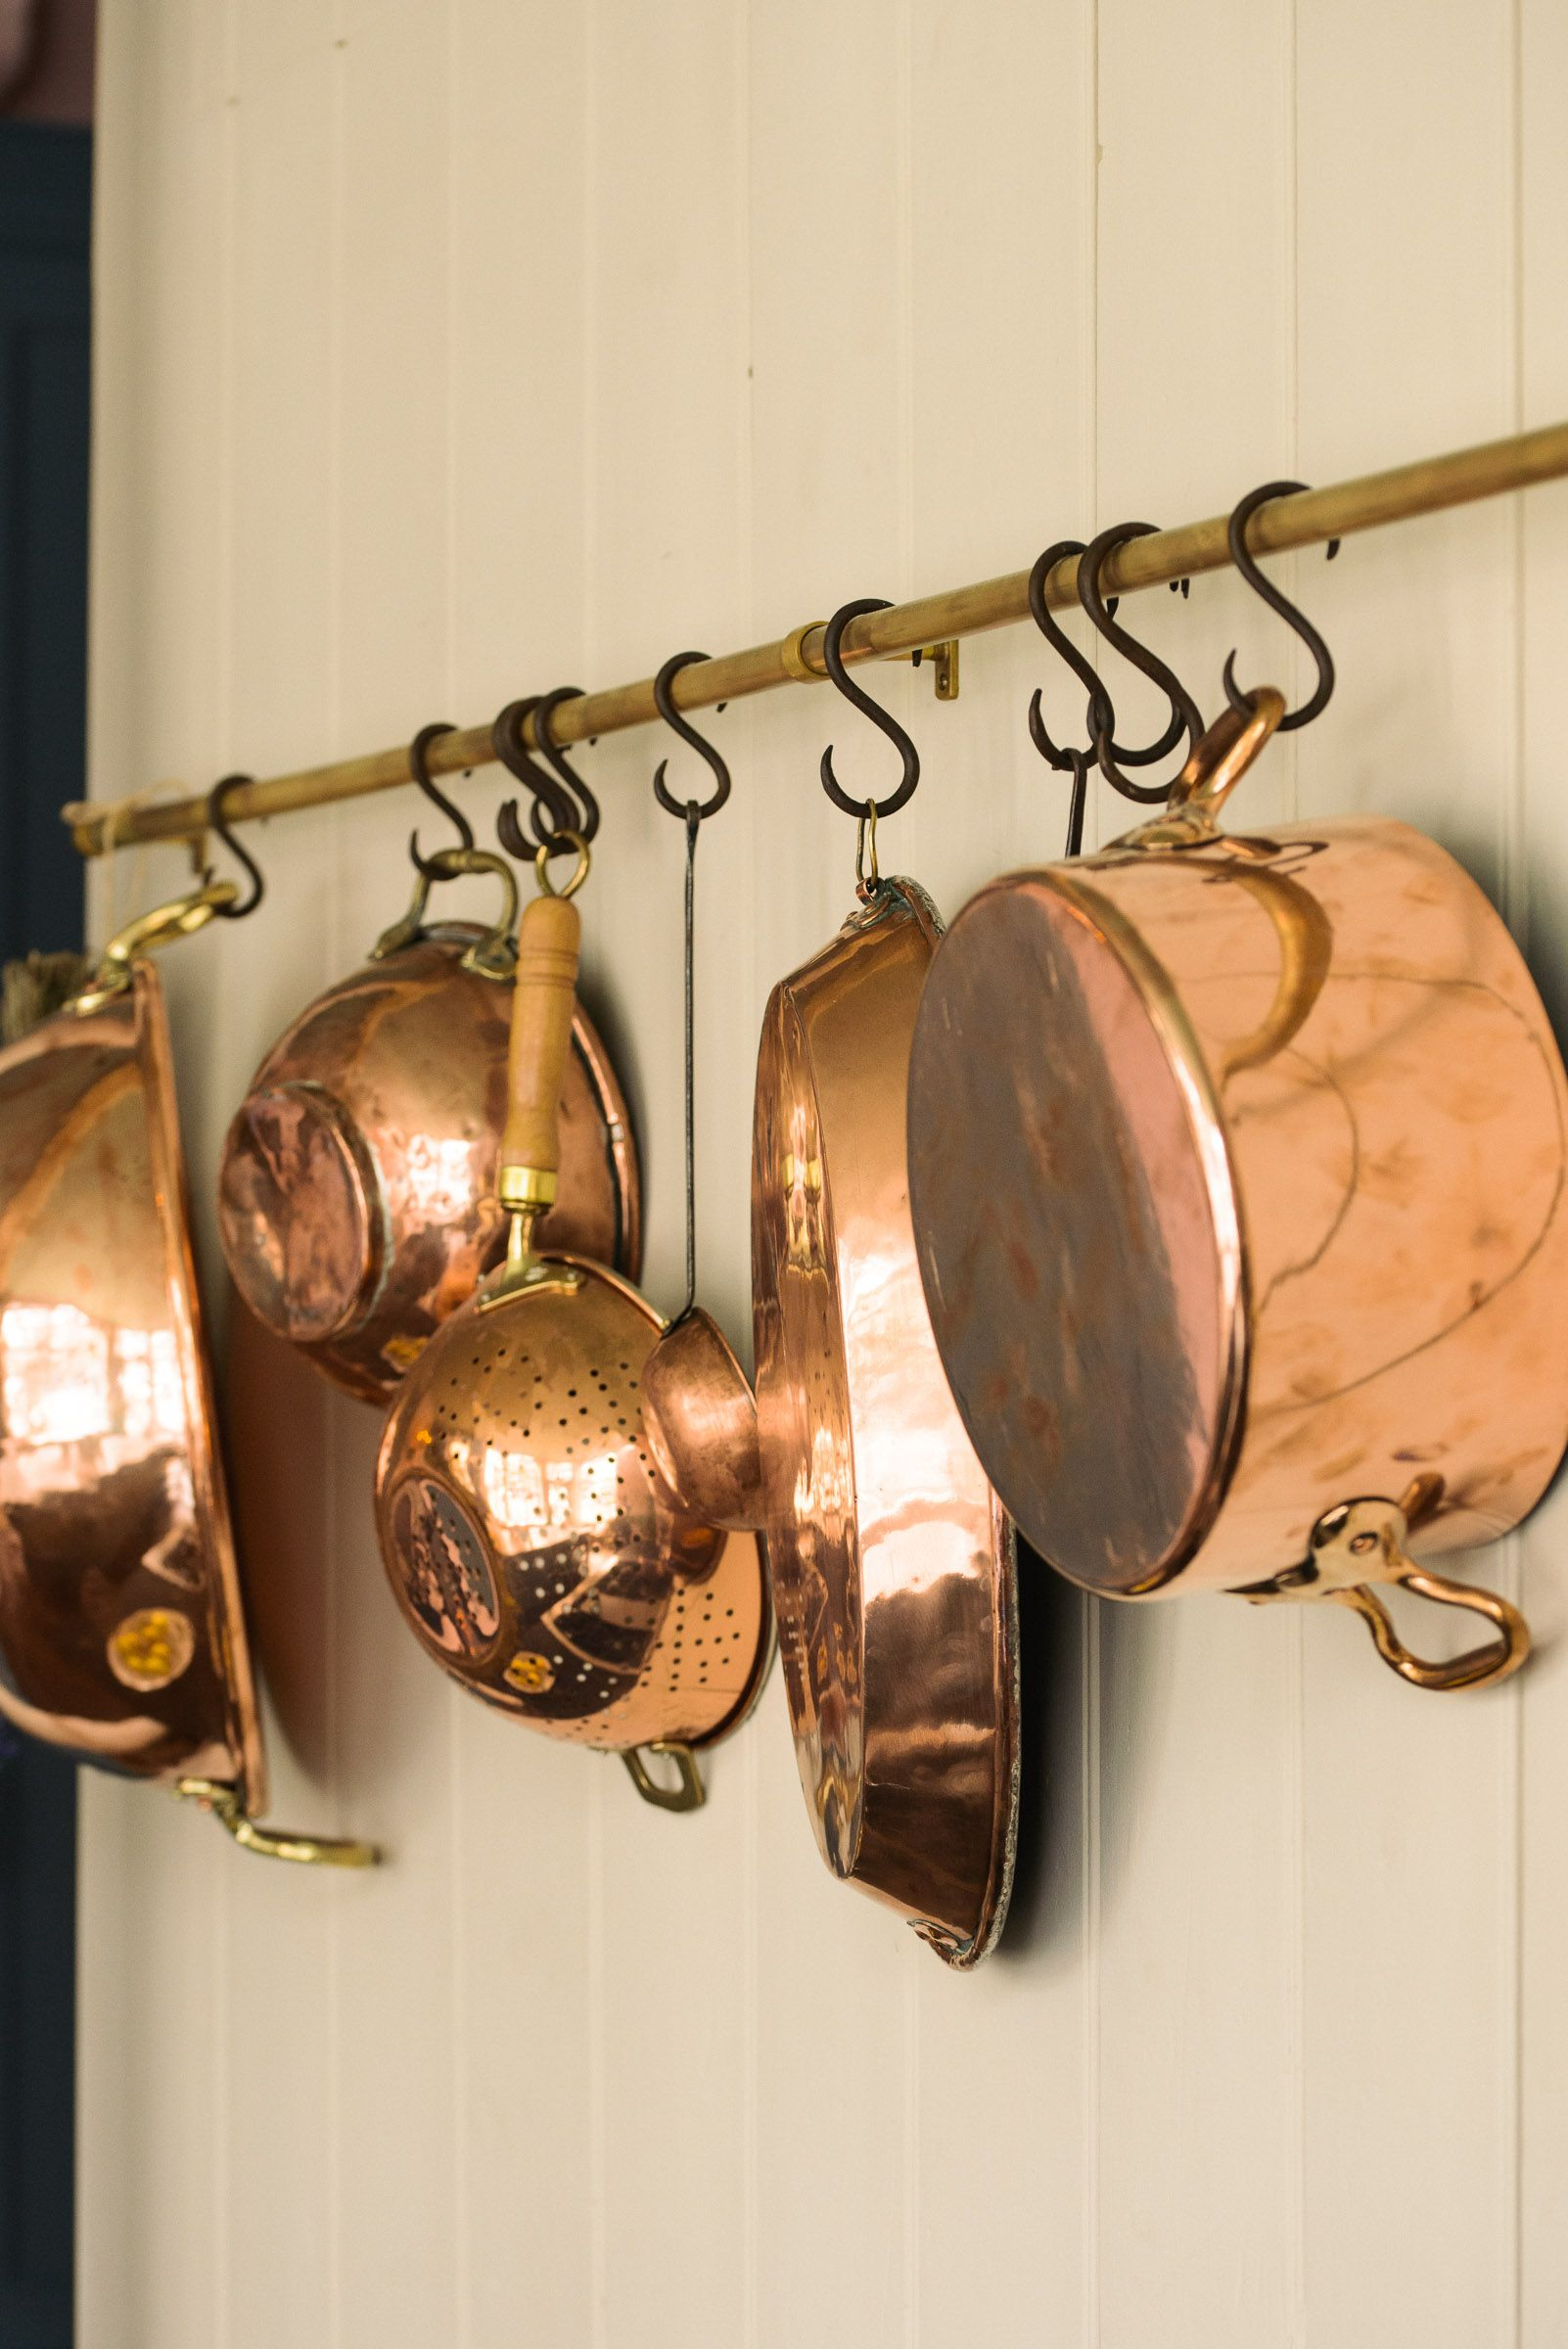 Lots Of Lovely Old Copper Pans Hanging From An Aged Brass Rail Copper Pans Hanging Copper Decor Copper Pots Display